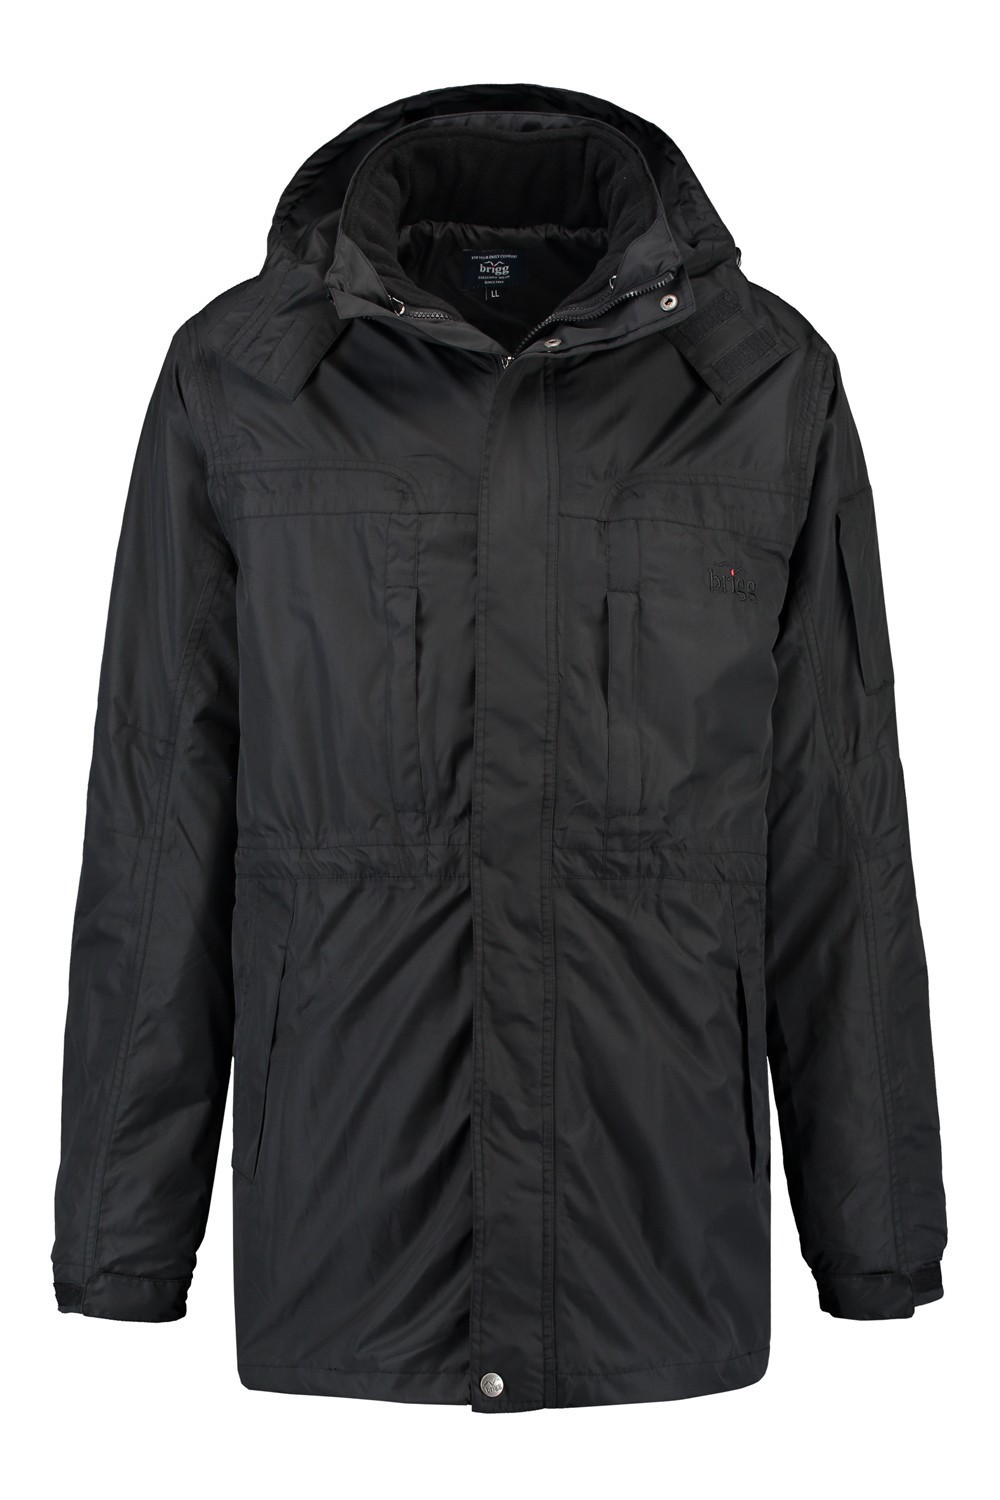 Brigg 3 in 1 Winterjacket Black